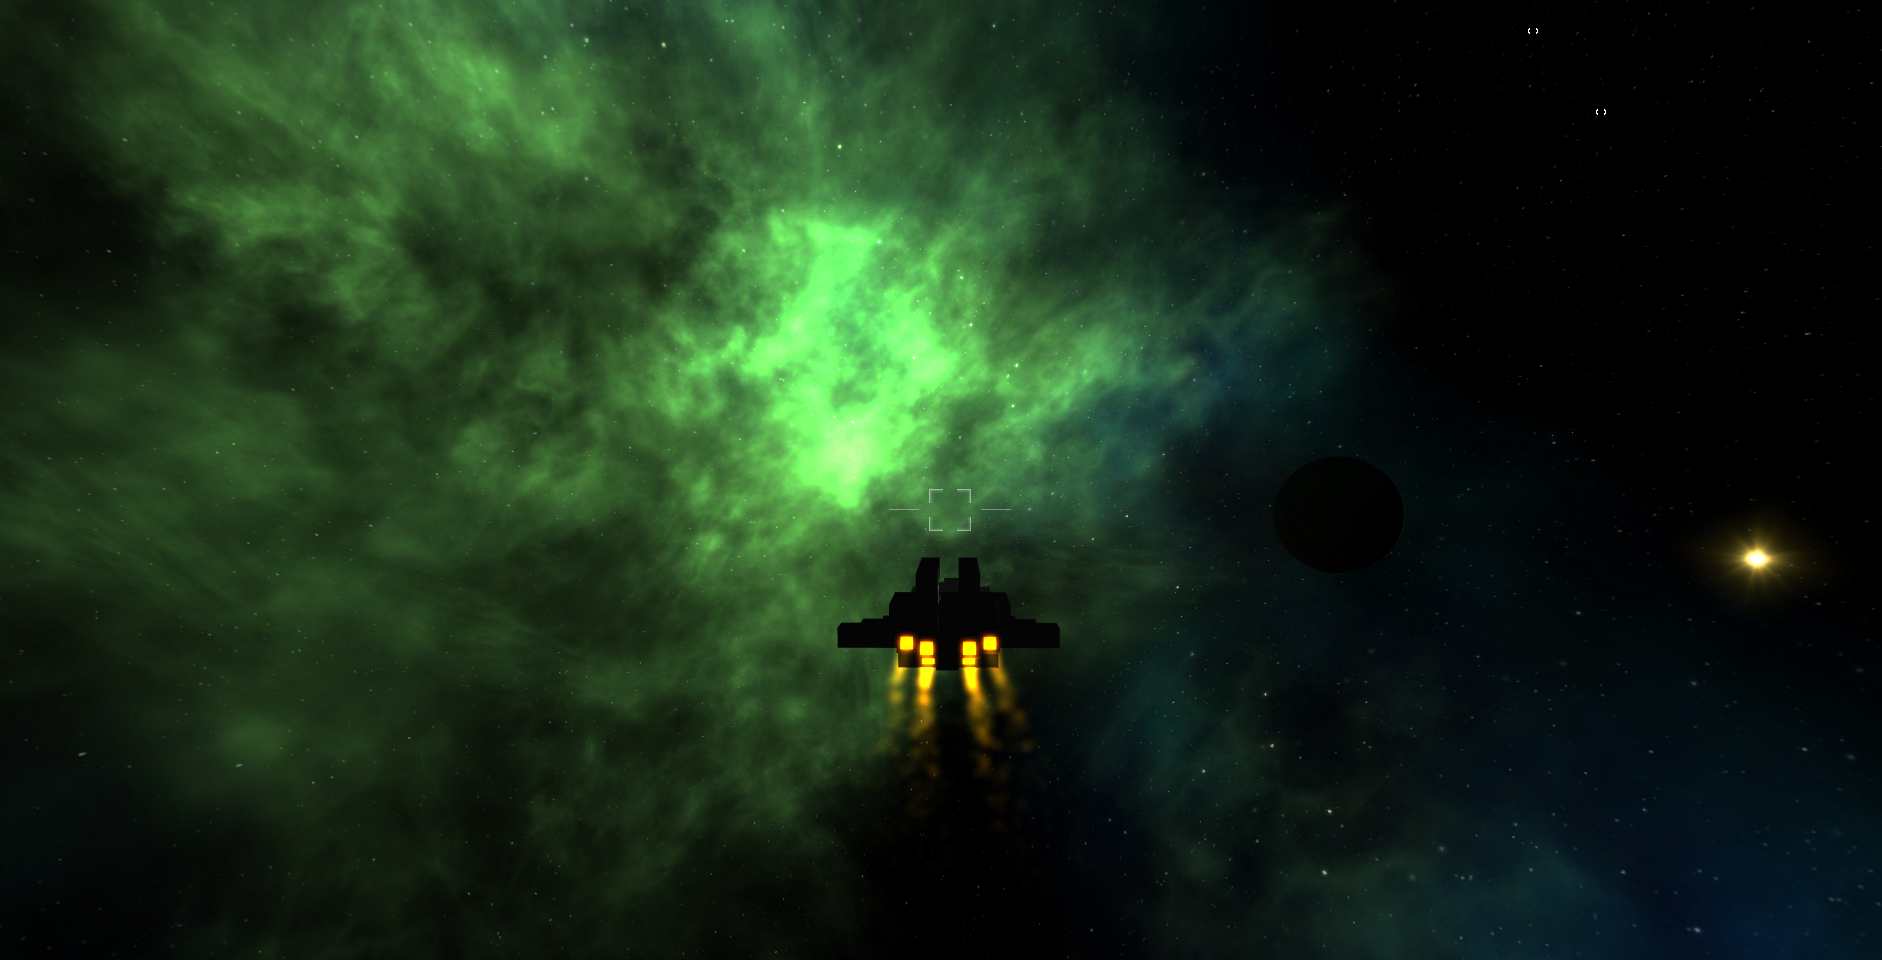 Venator class cruiser entering a green nebula